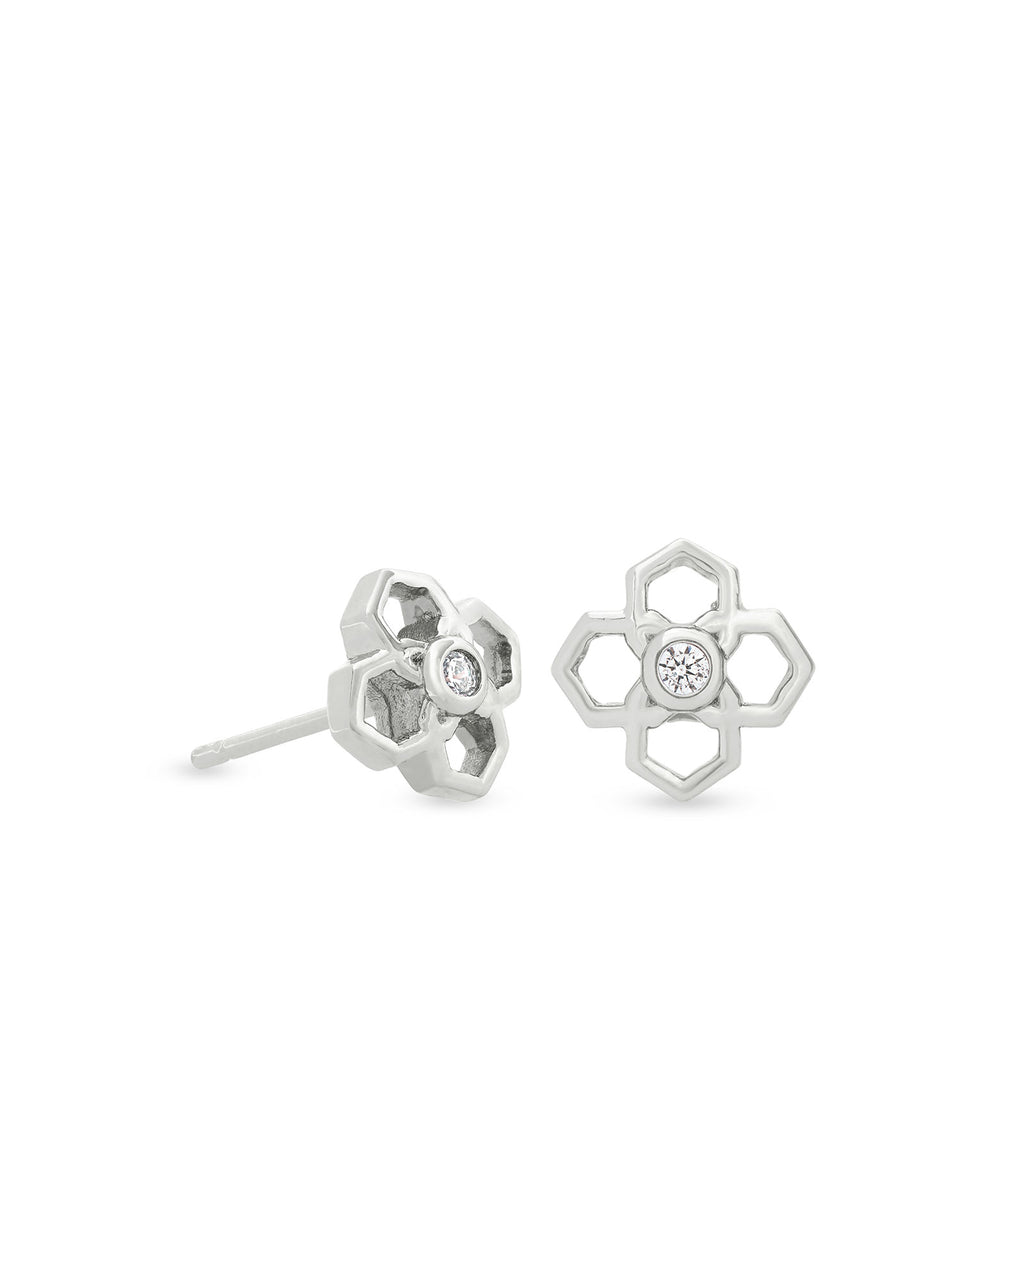 Rue Stud Earrings in Silver